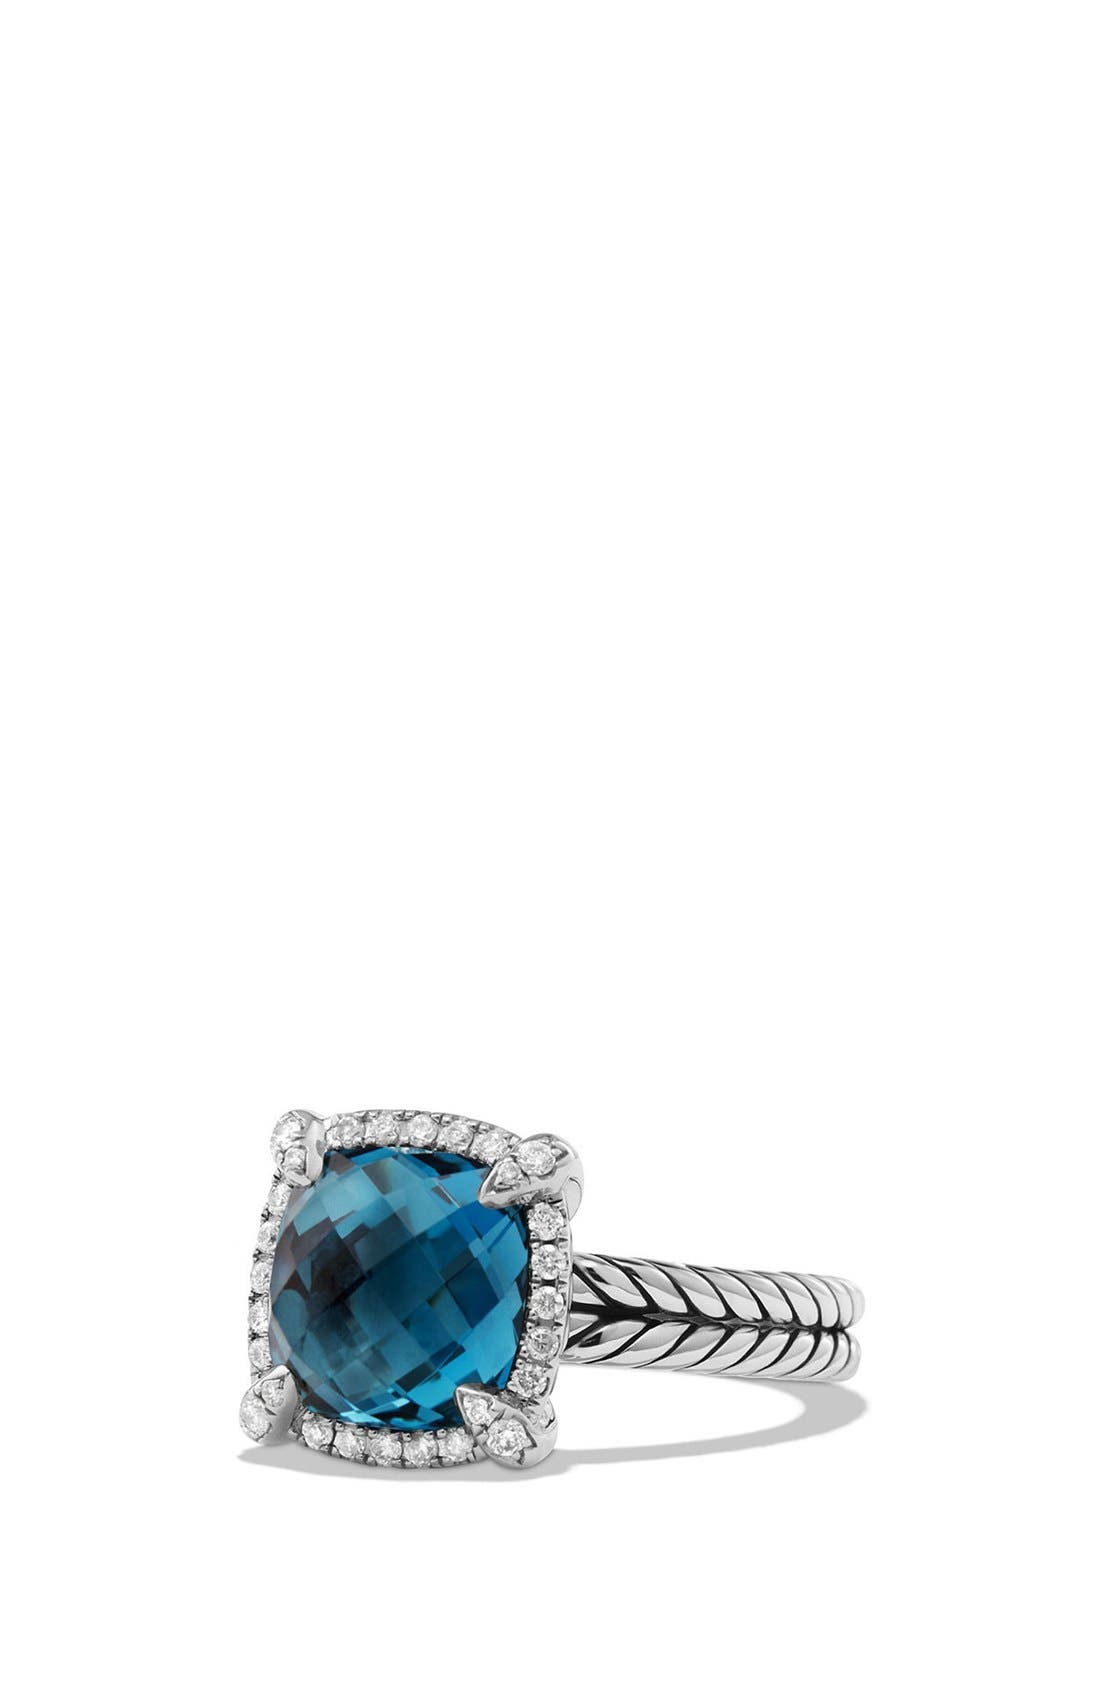 DAVID YURMAN Châtelaine Small Pavé Bezel Ring with Diamonds